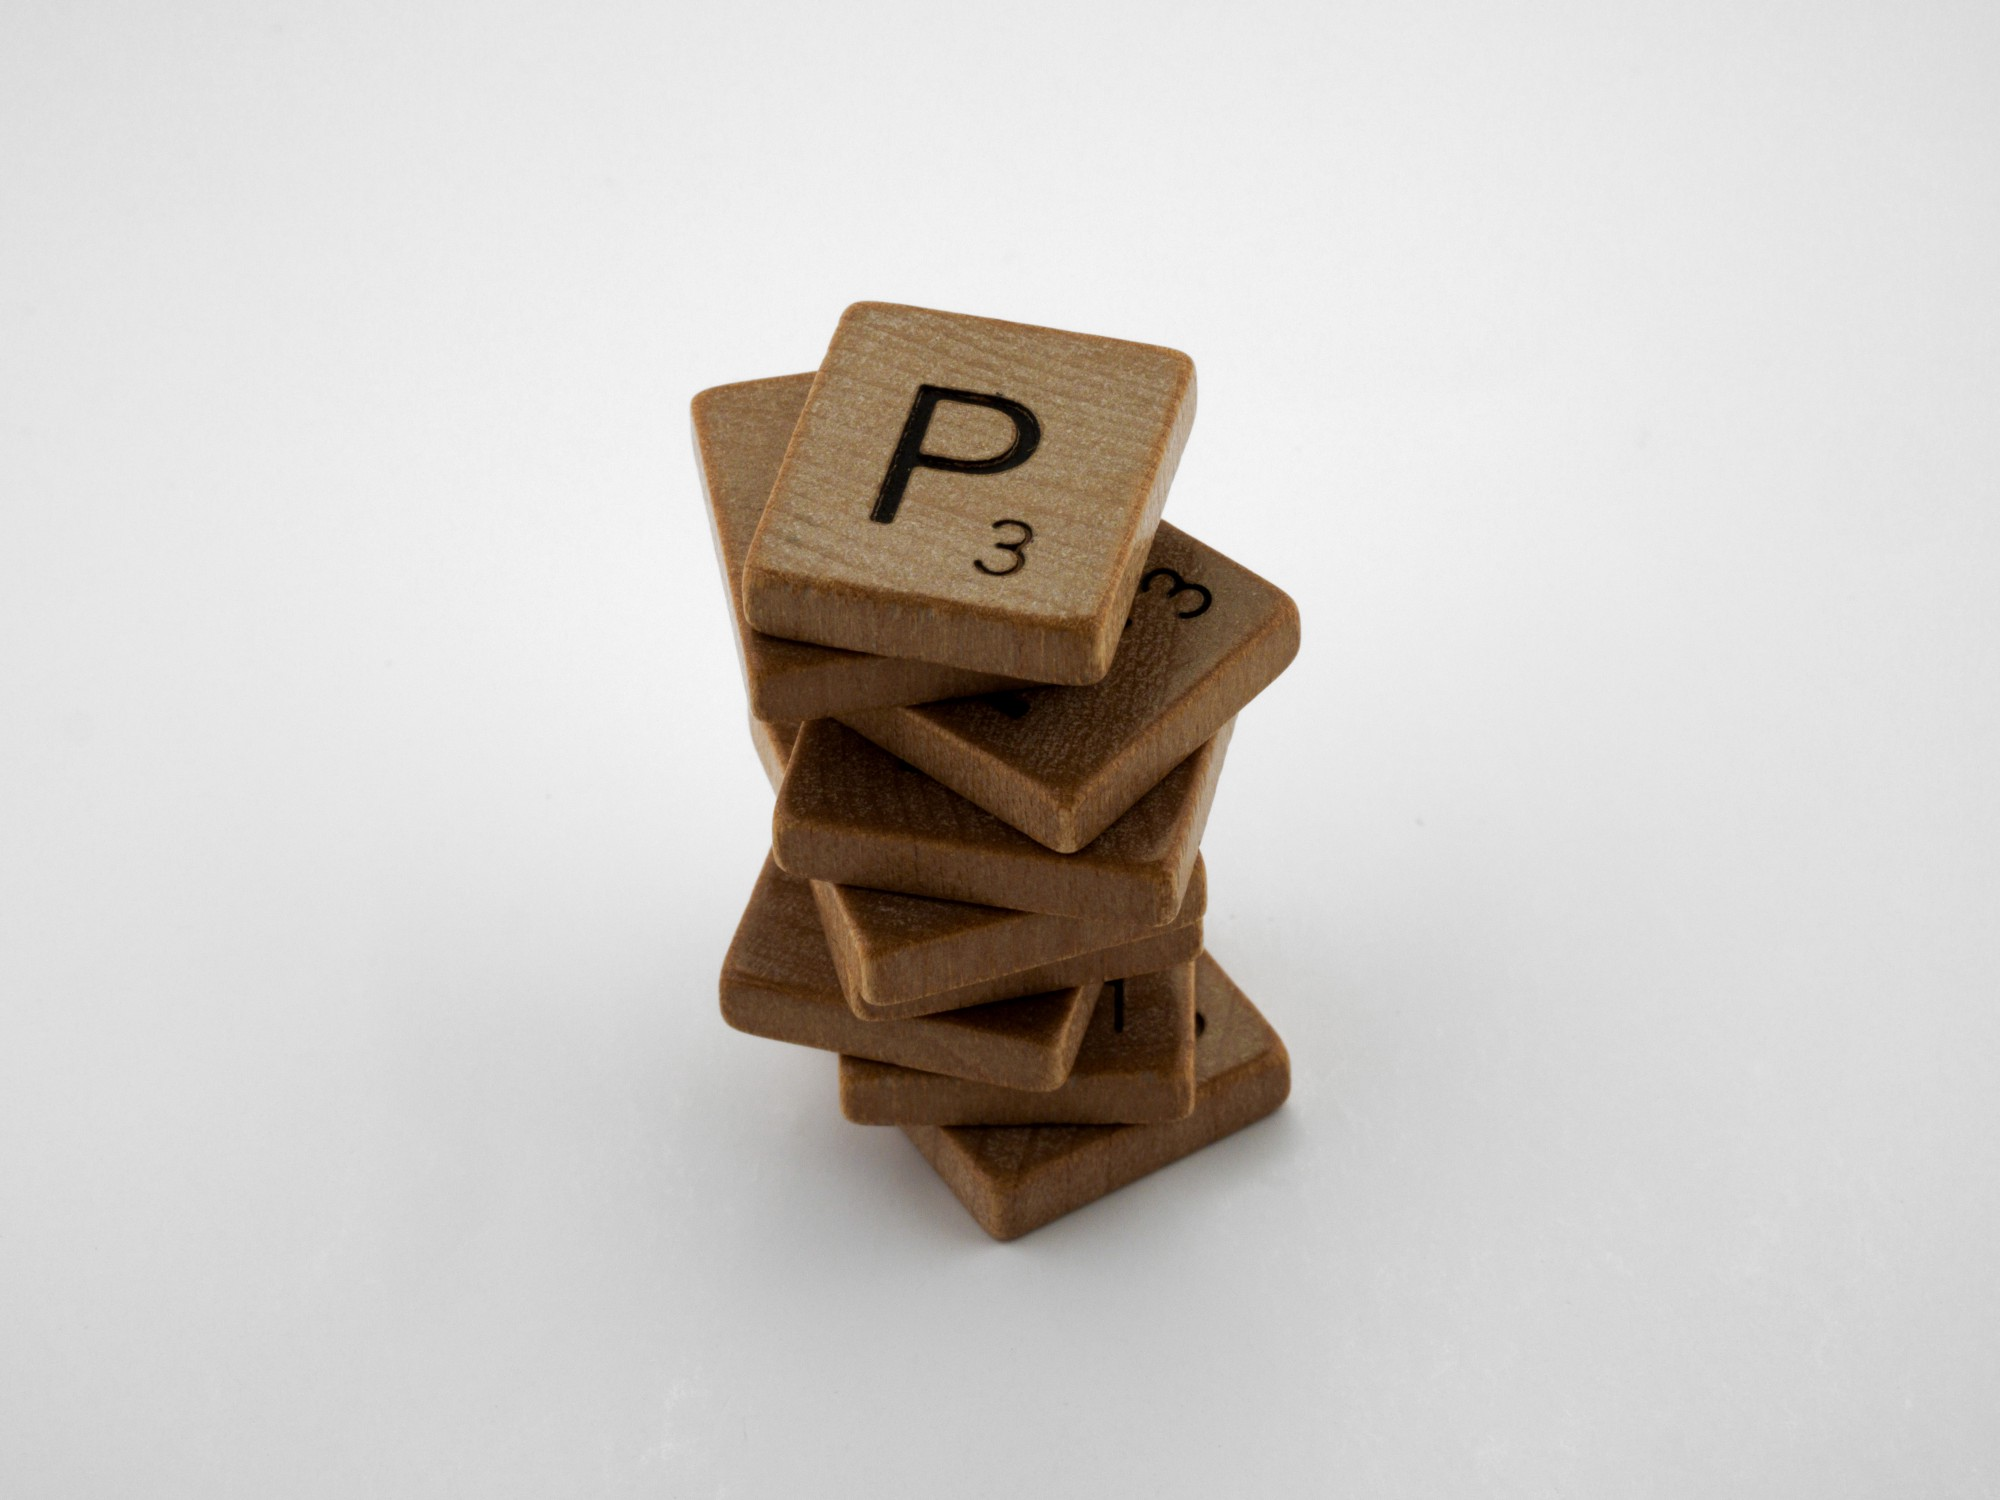 Stack of 8 Scrabble tiles with P3 showing on top